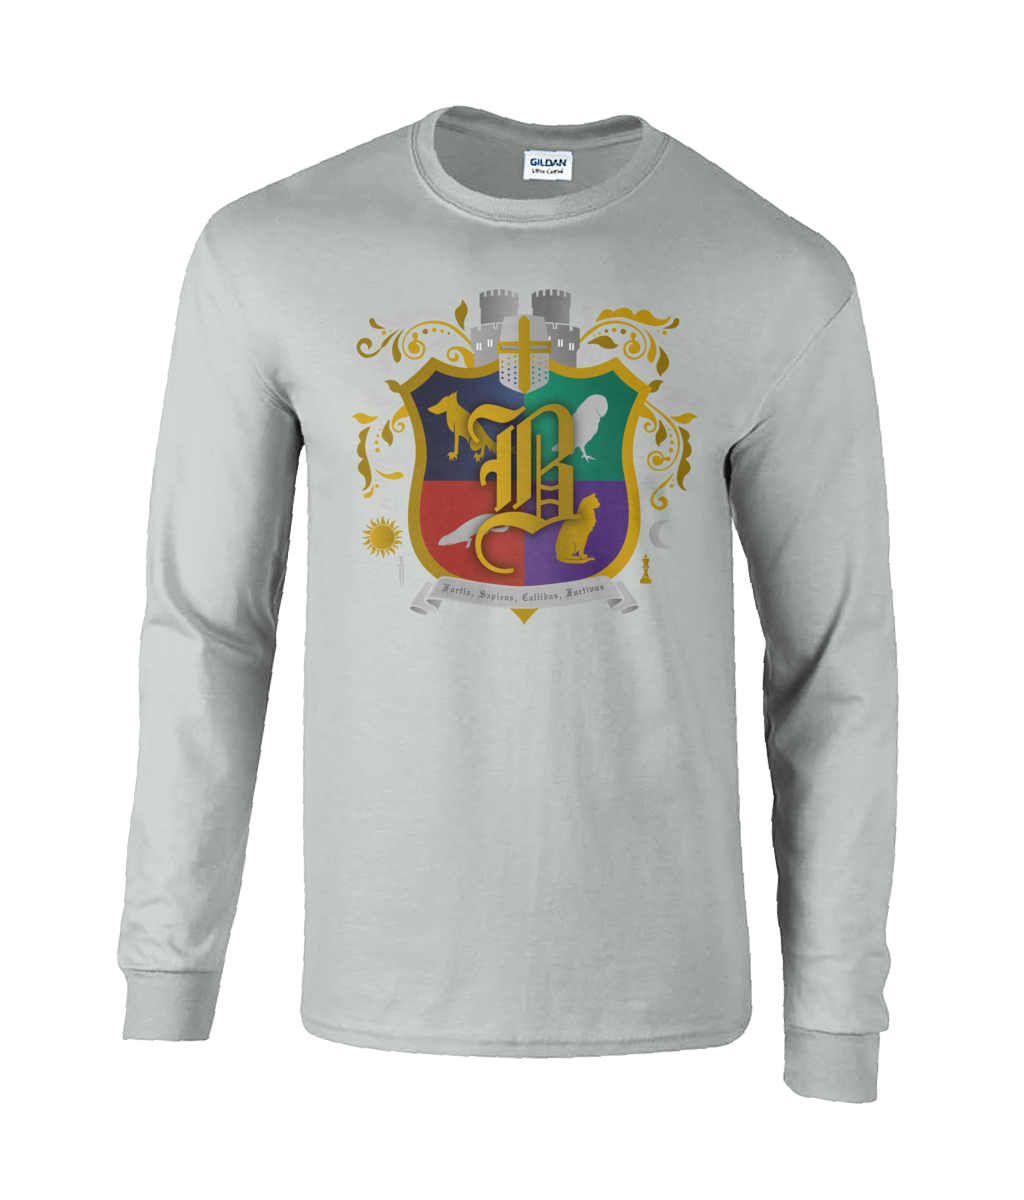 Unisex Long Sleeve Bothwell Crest T-Shirt